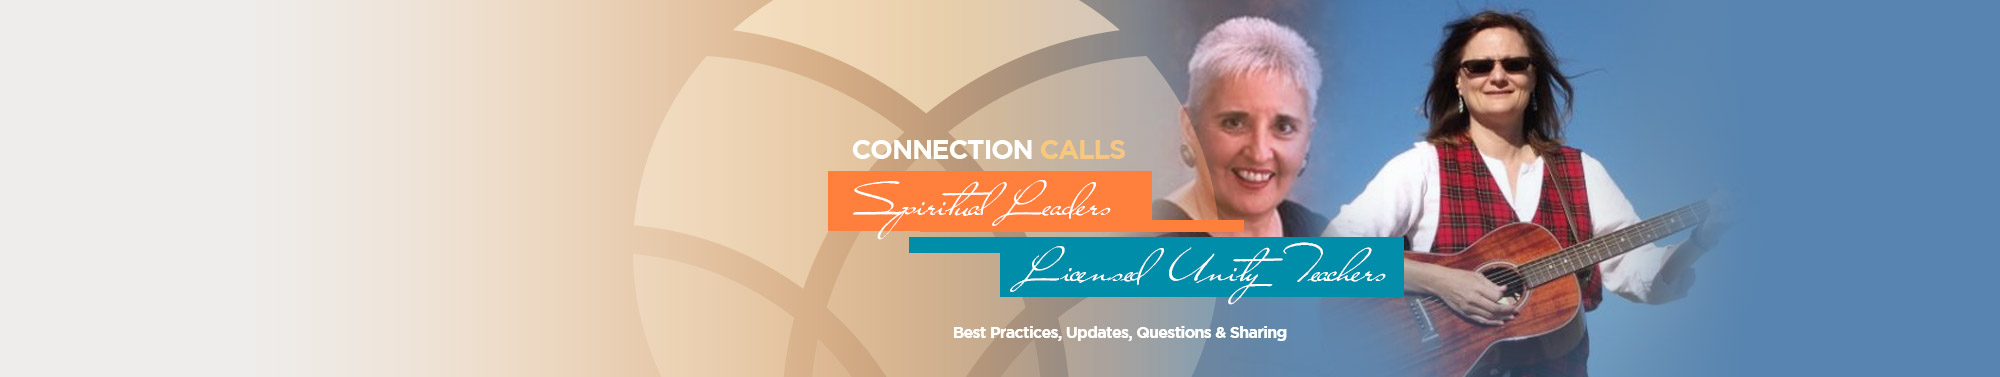 Connection Calls for Spiritual Leaders and LUTS